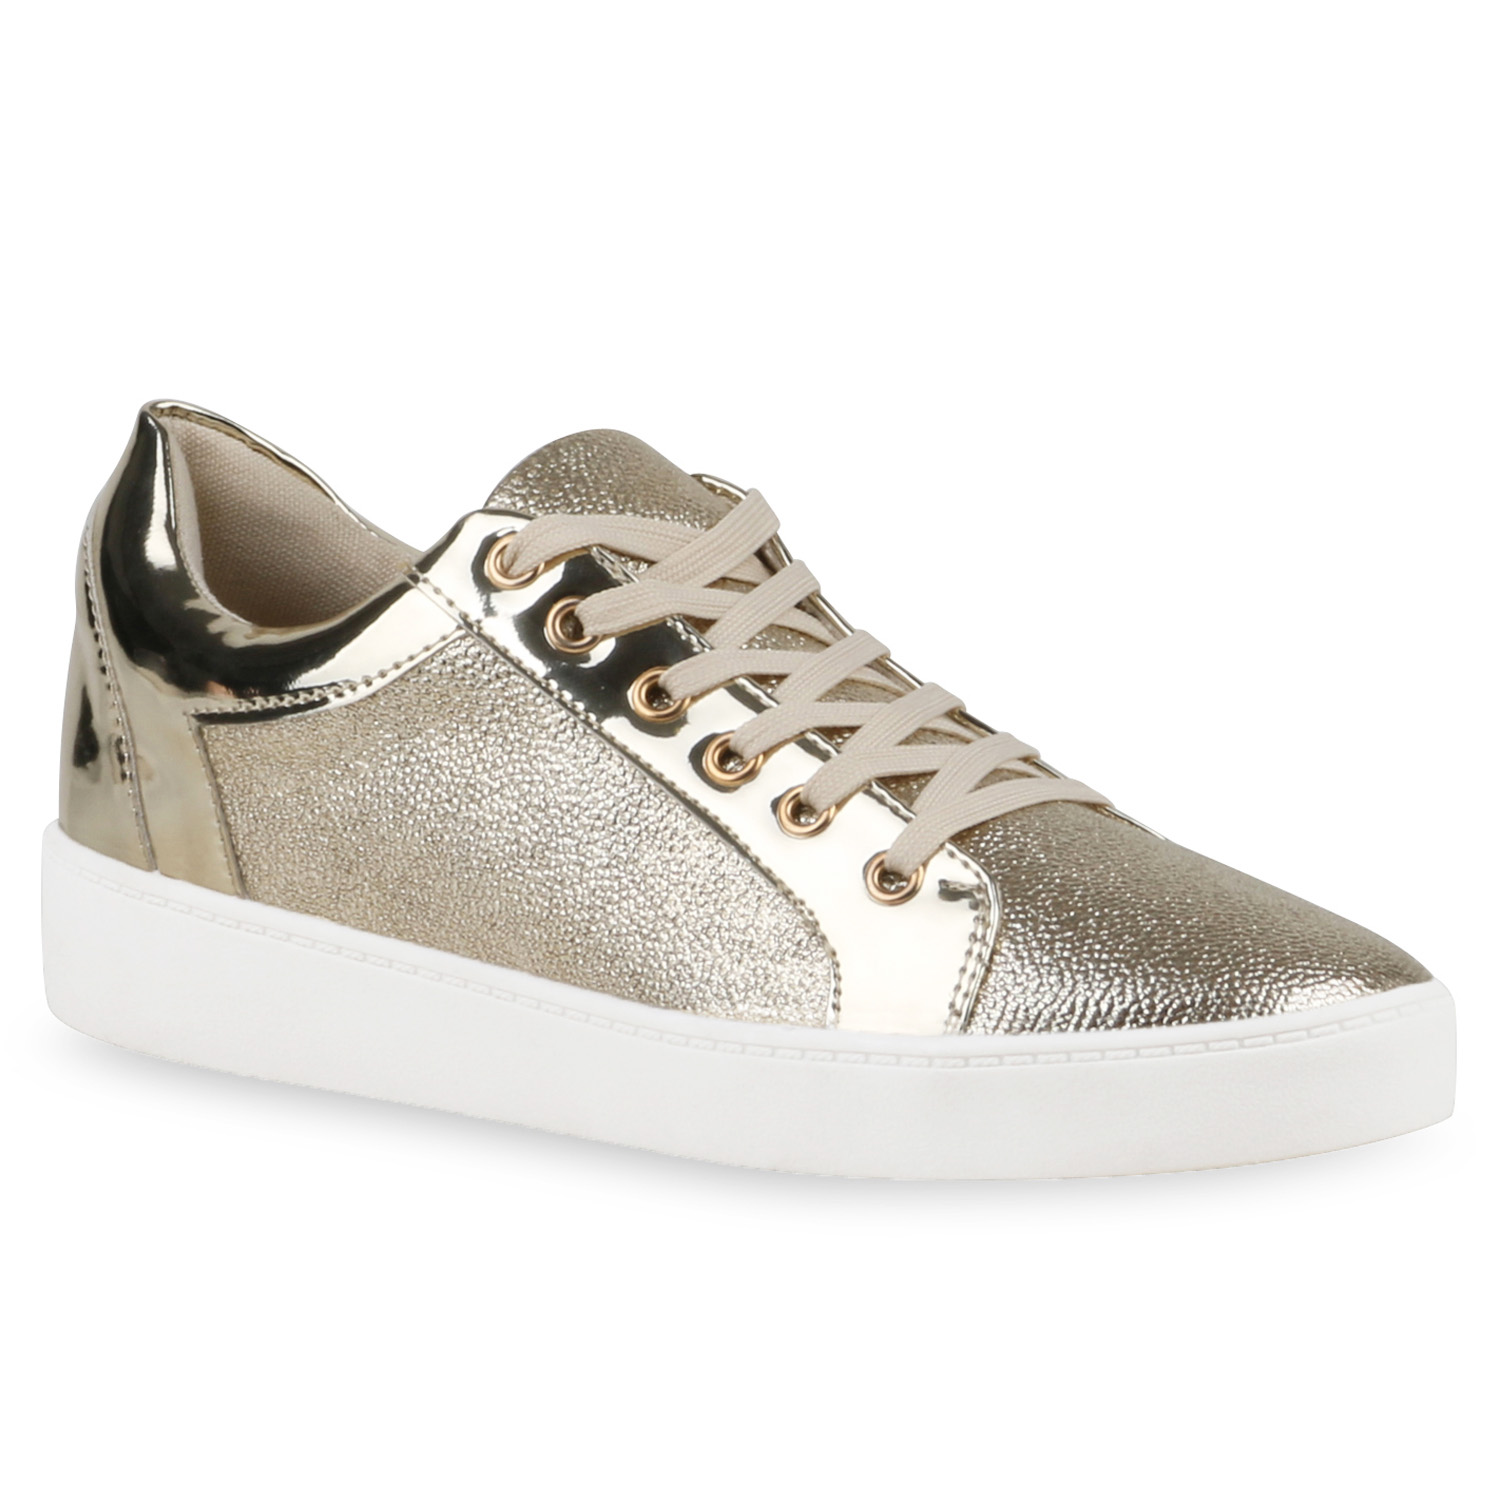 damen sneakers low glitzer wedges lack turnschuhe metallic. Black Bedroom Furniture Sets. Home Design Ideas